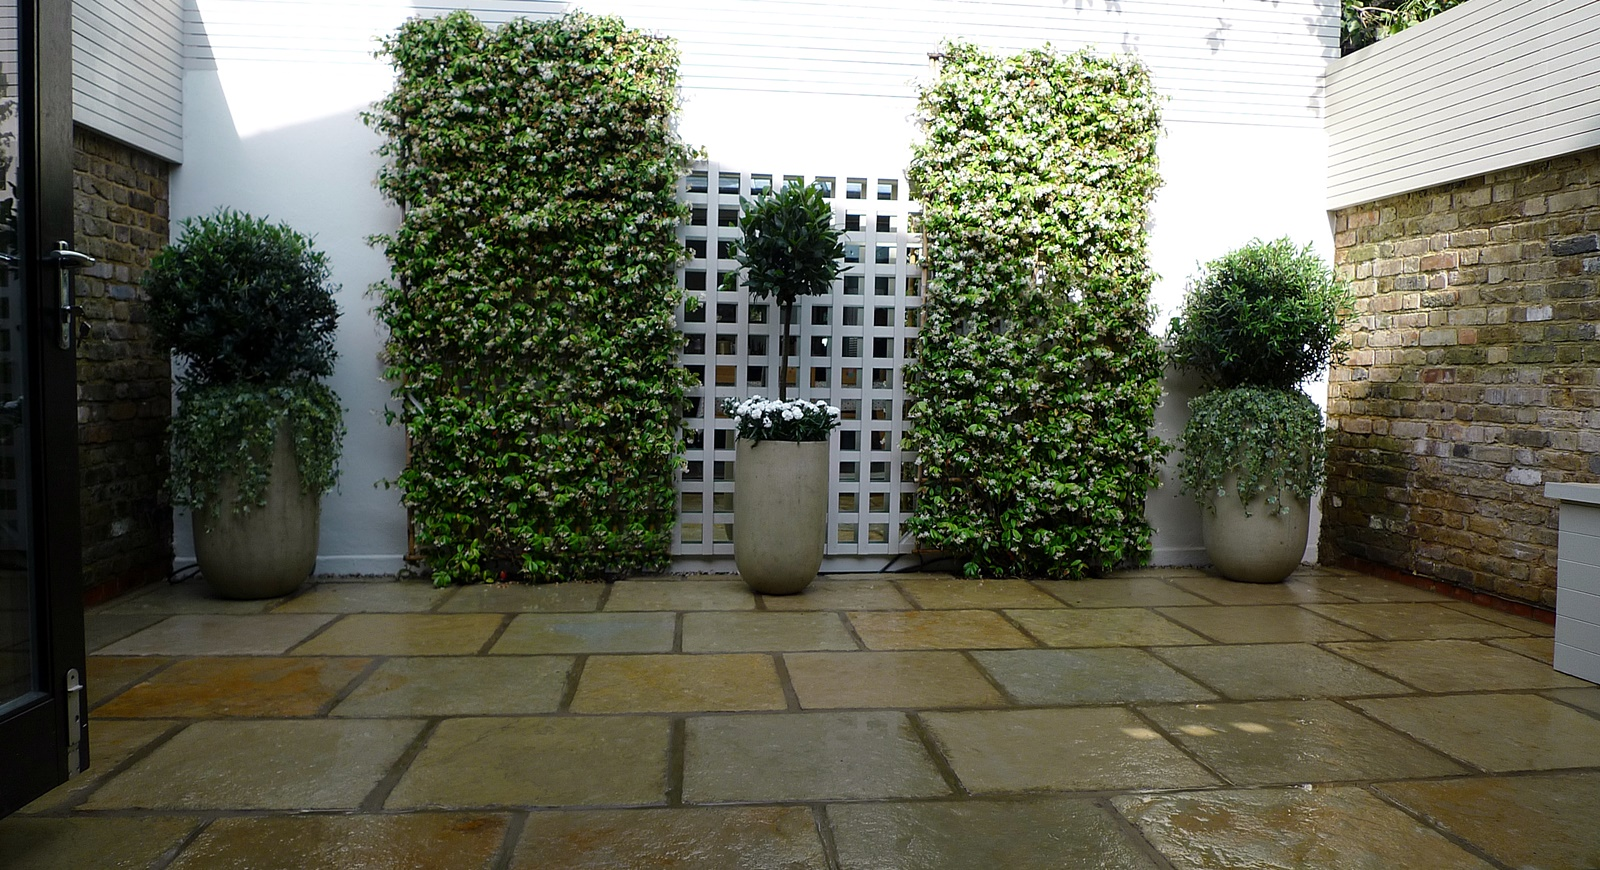 Courtyard minimalist contemporary garden design and designer marylebone london